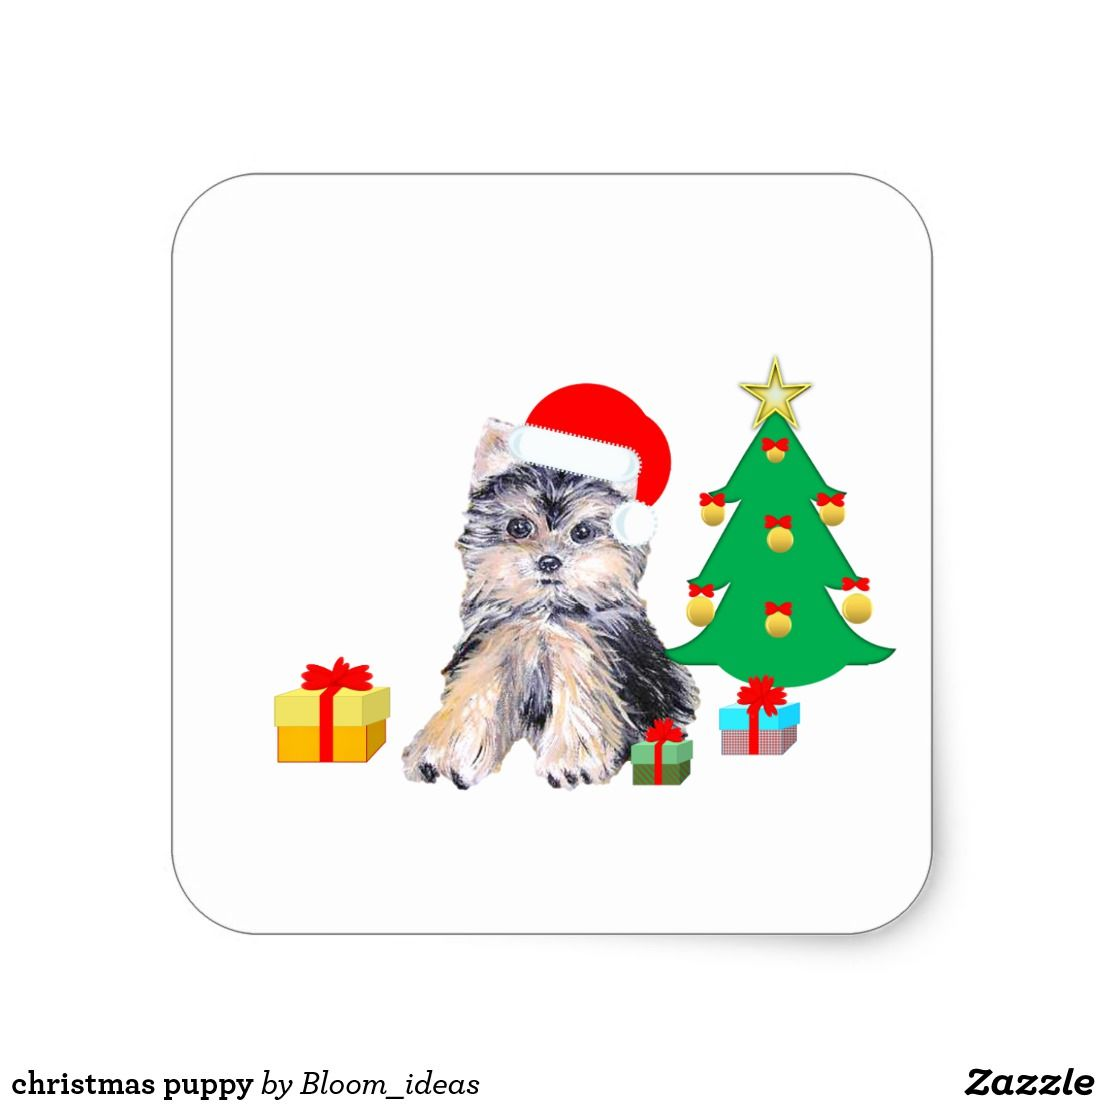 Christmas Tree Cute Yorkshire Puppy Dog Gifts Square Sticker Zazzle Com Dog Gifts Yorkshire Puppies Christmas Puppy